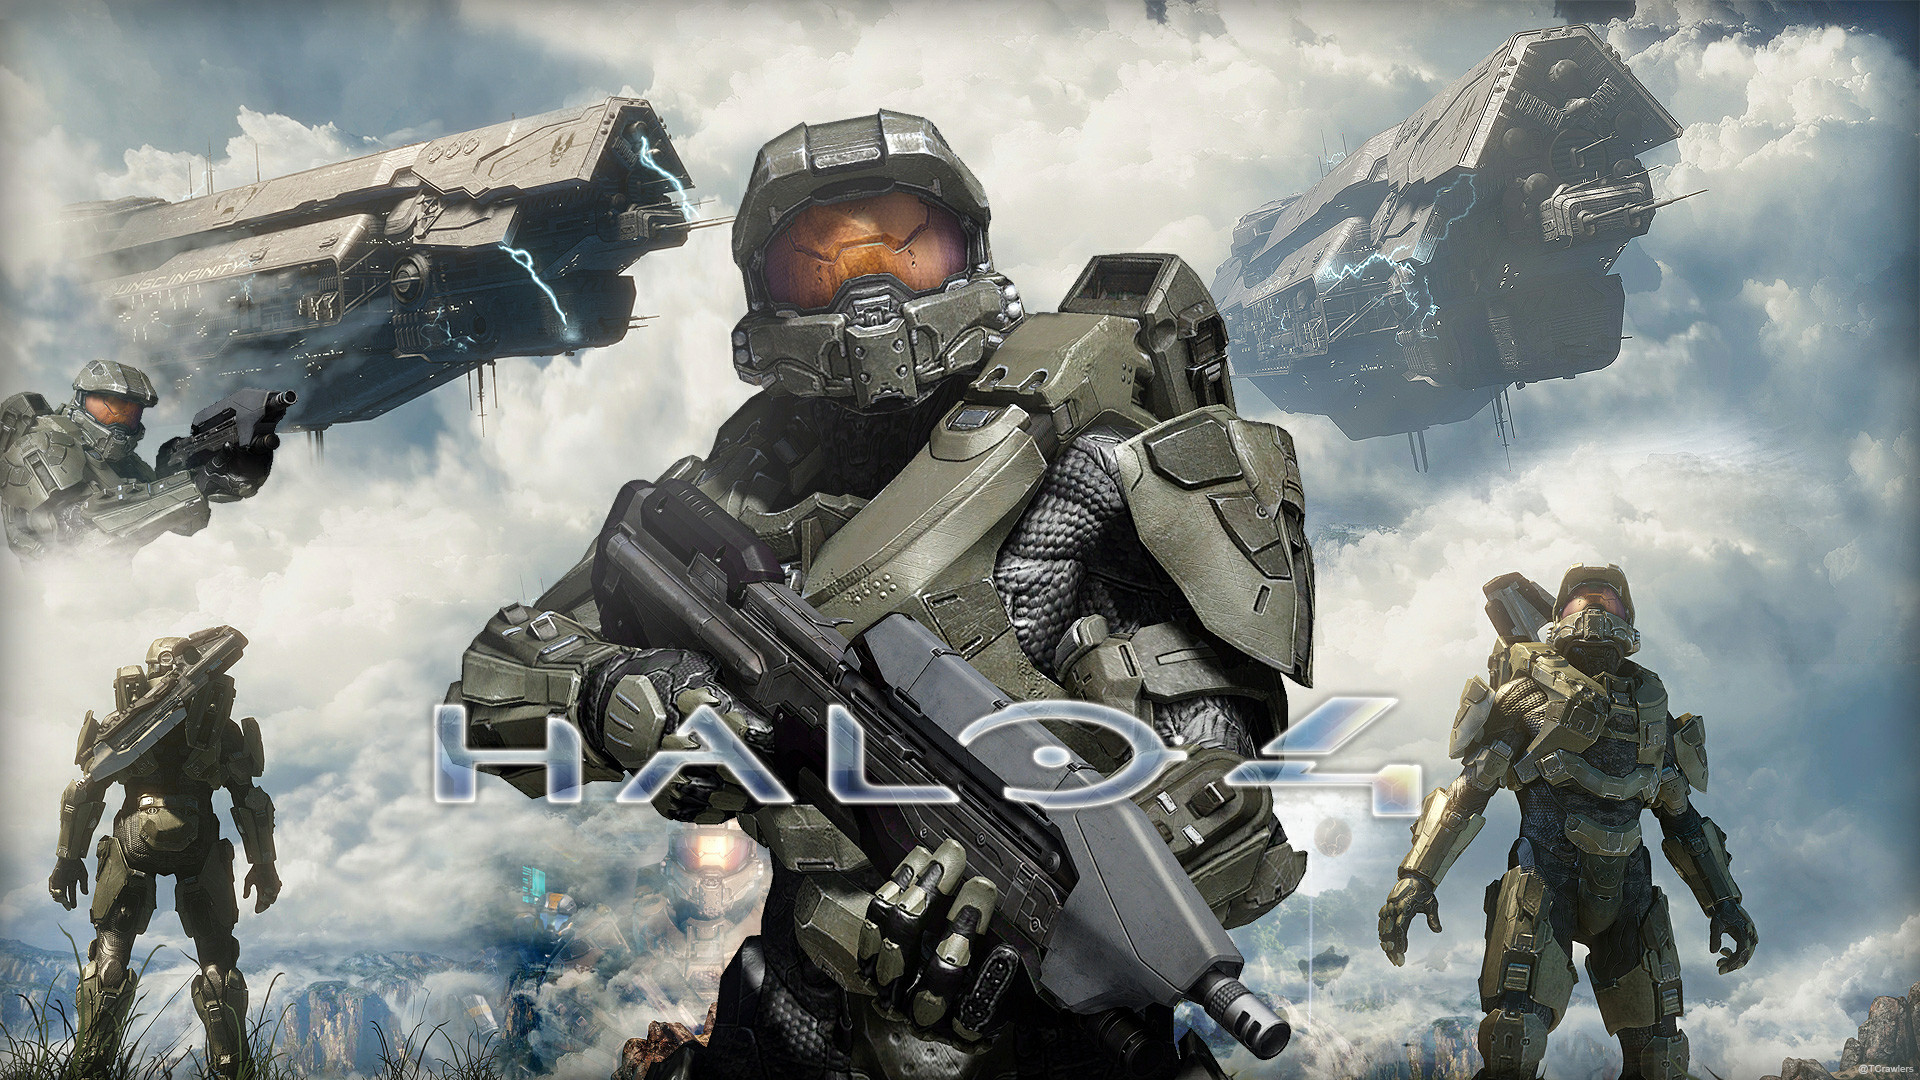 1920x1080 Halo 4 Wallpaper